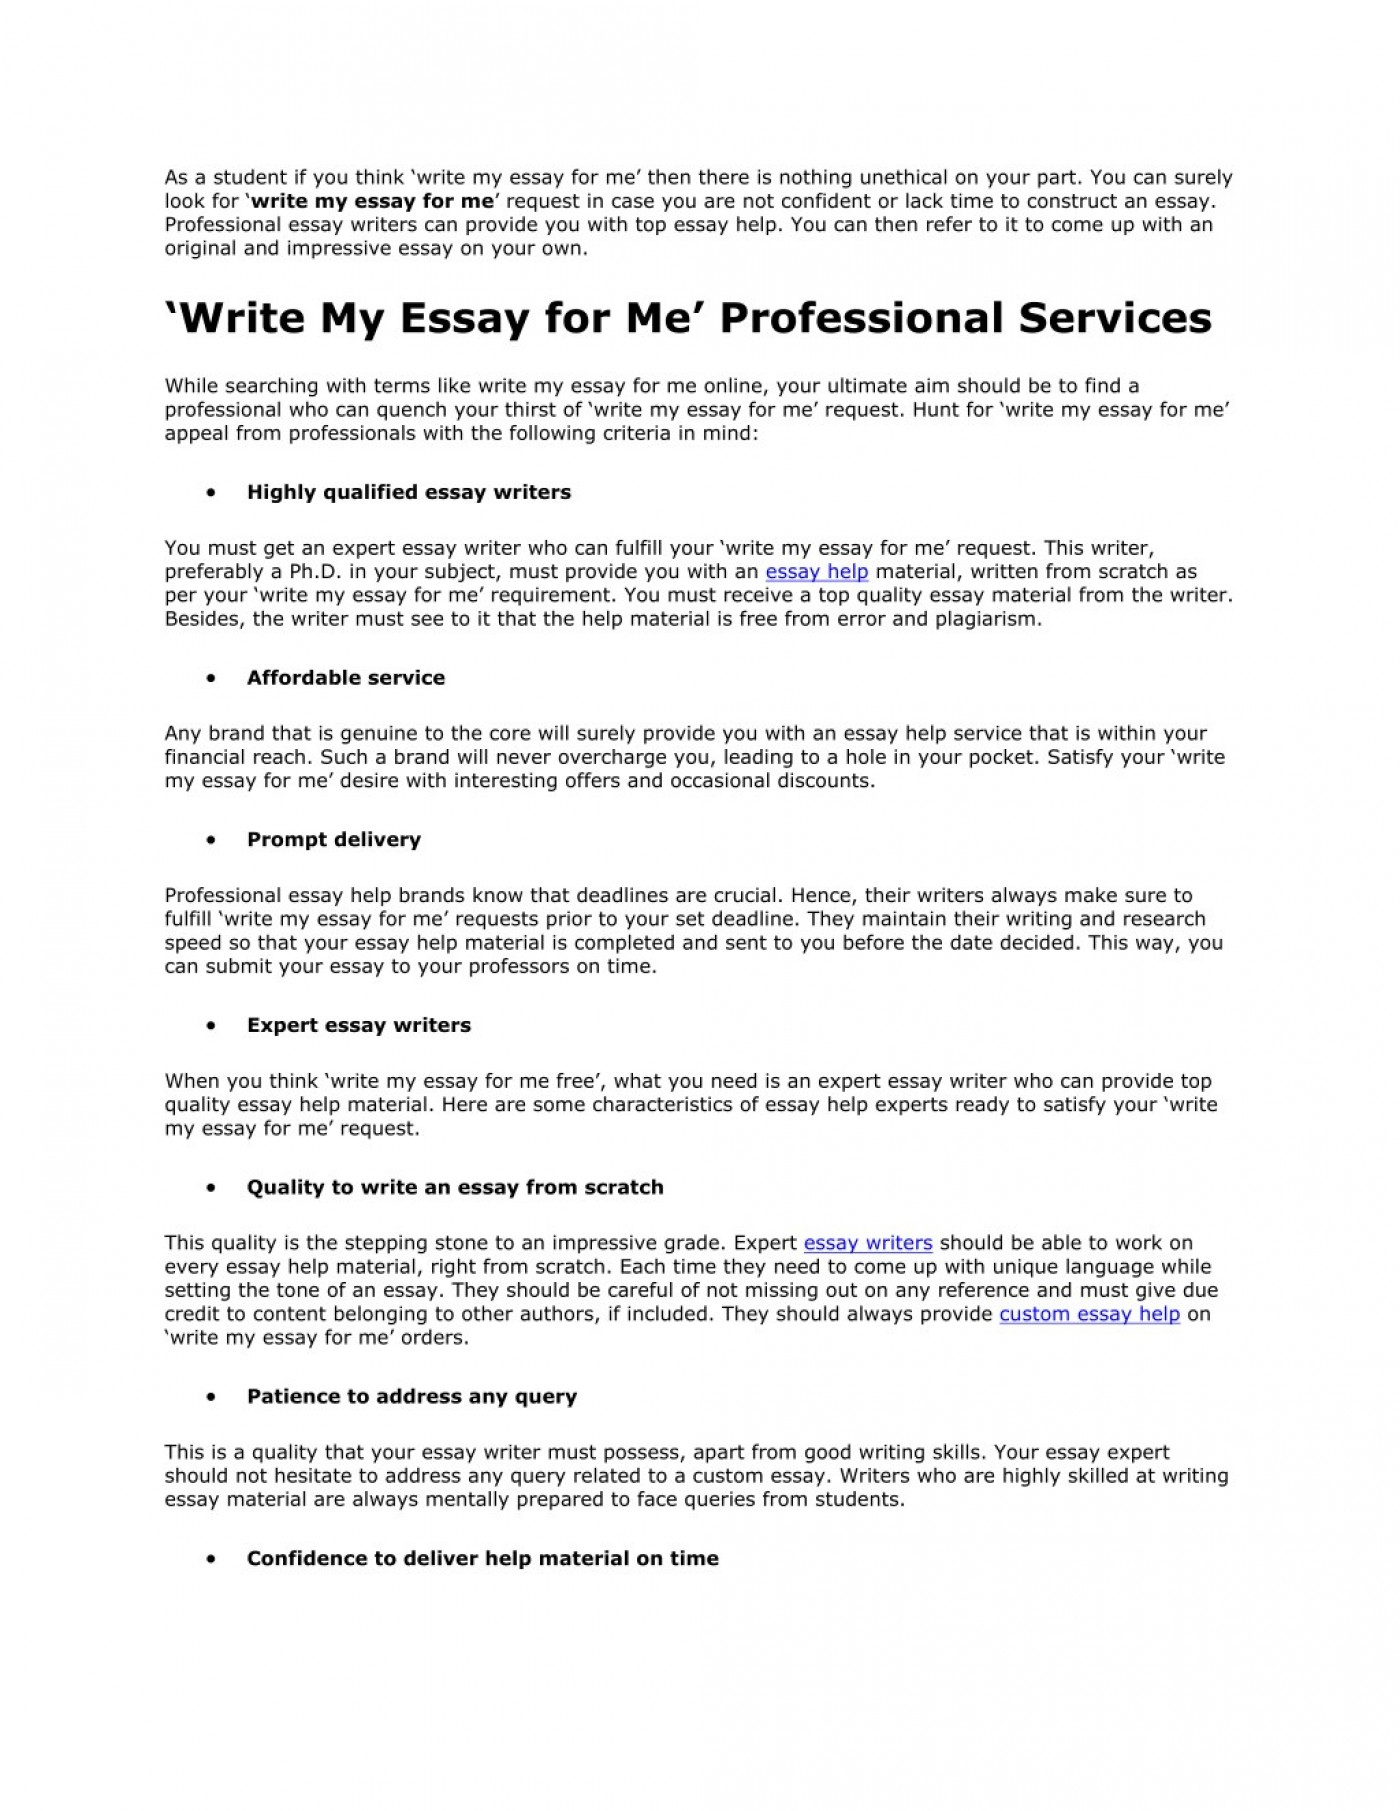 017 Write My Essay For Me Example As Student If You Think Surprising Free Canada Online 1400